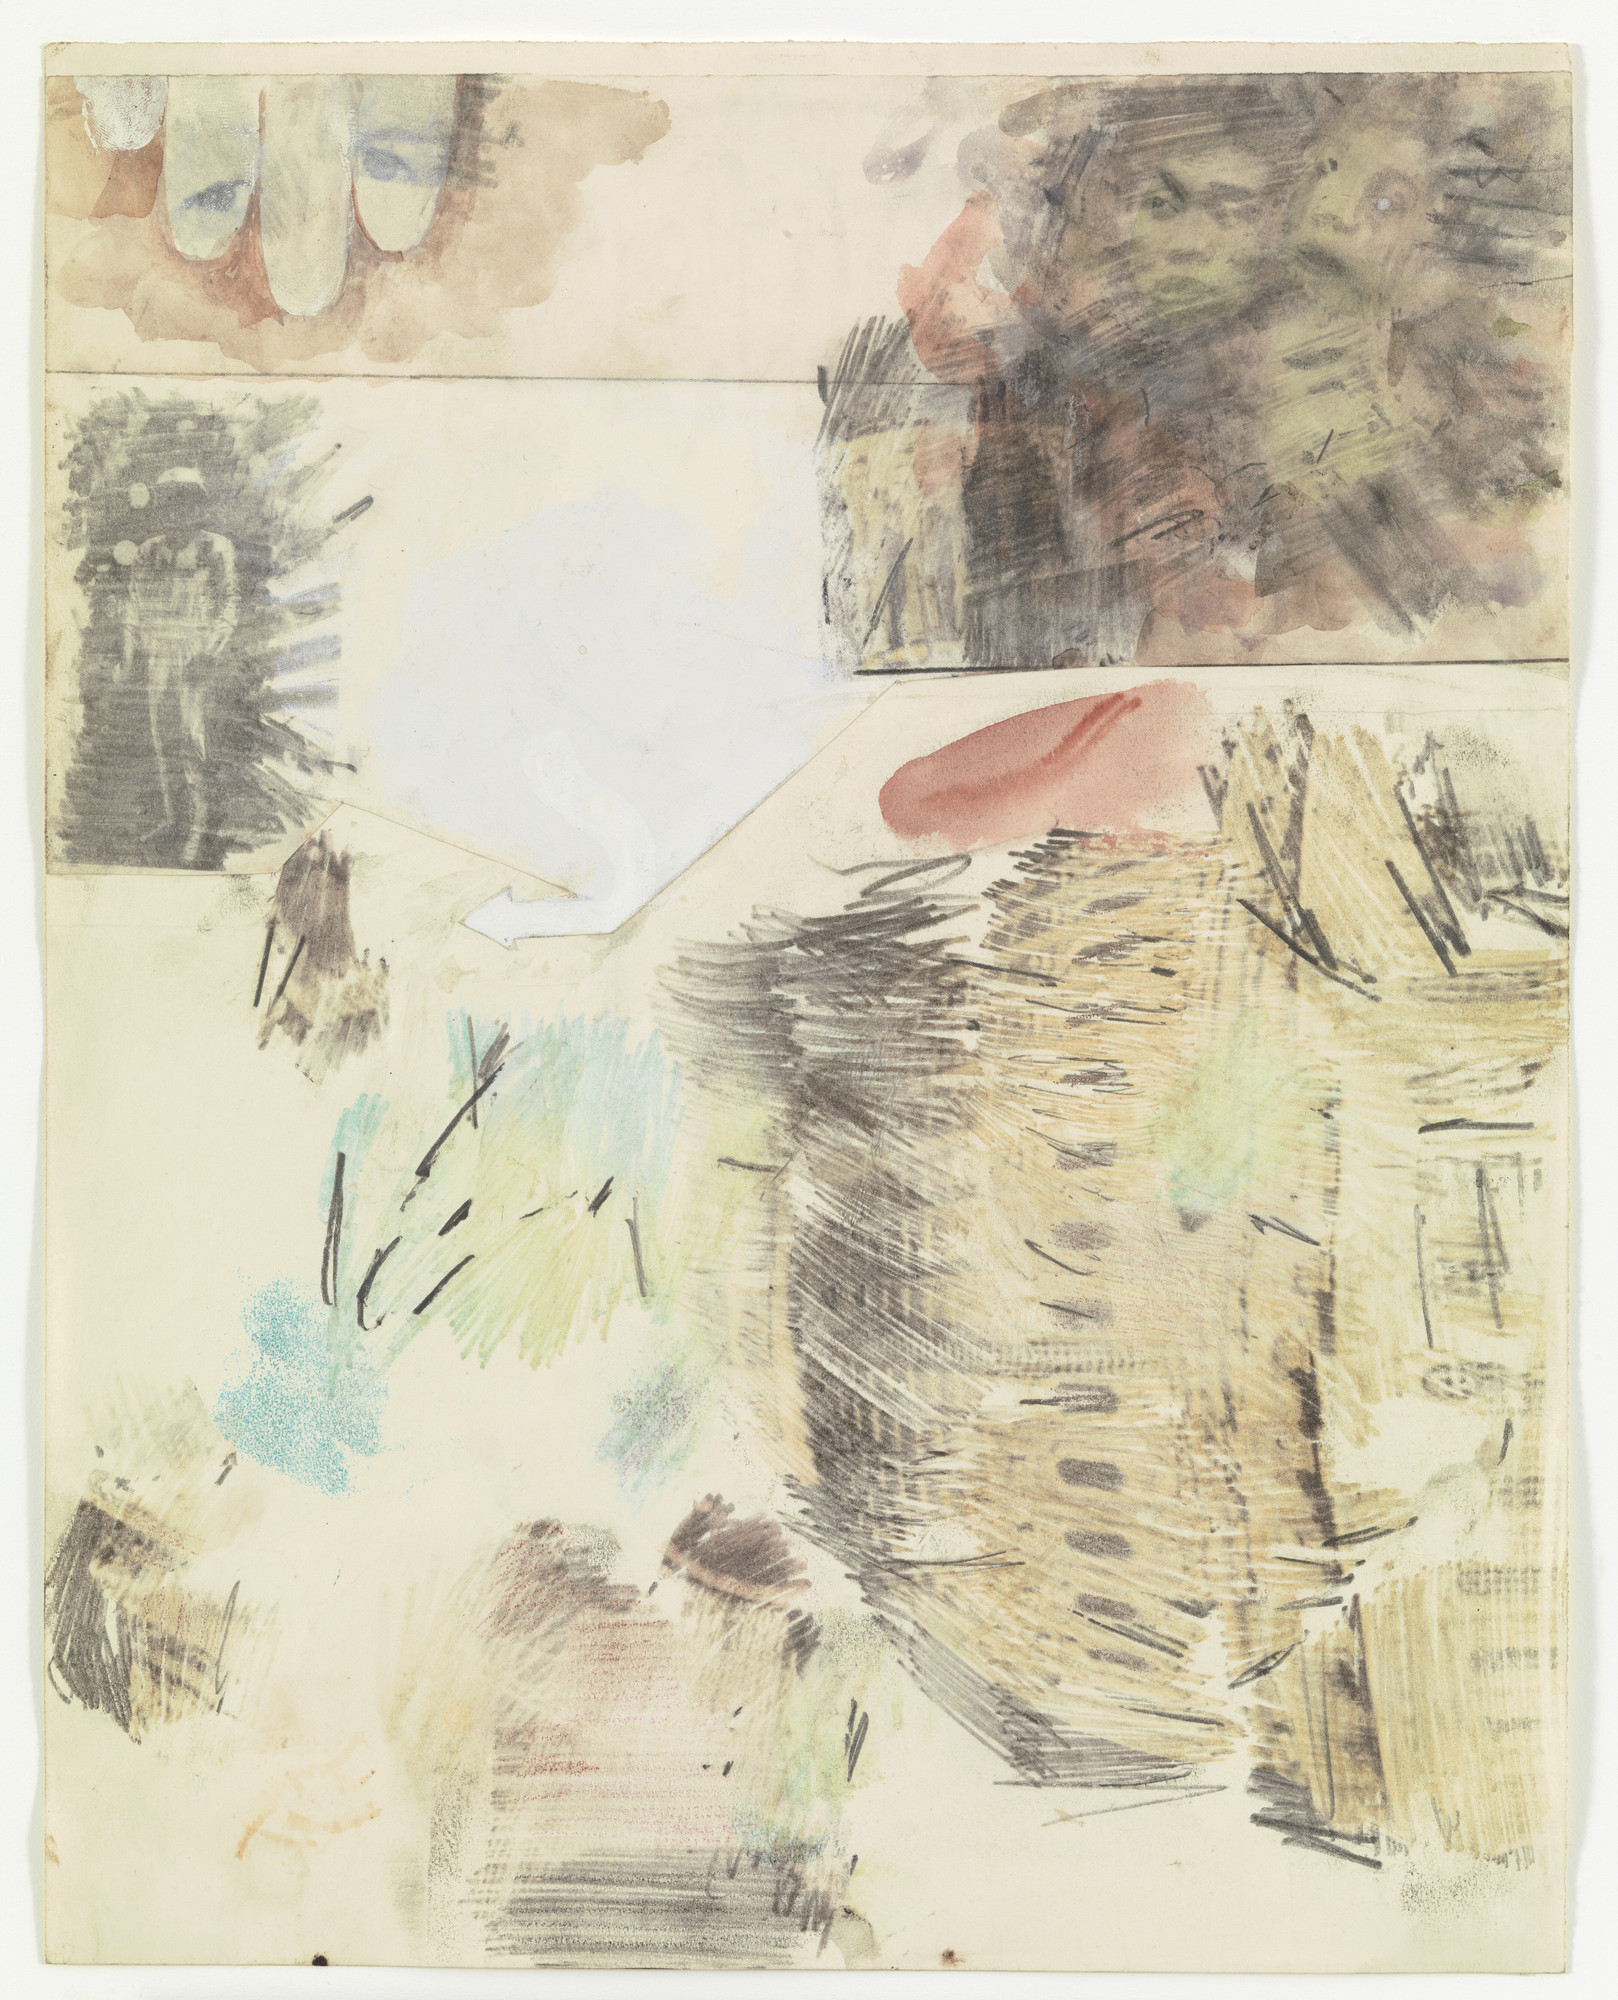 Robert Rauschenberg. Canto IX: Circle Six, The Heretics from the series Thirty-Four Illustrations for Dante's Inferno. (1959-60)